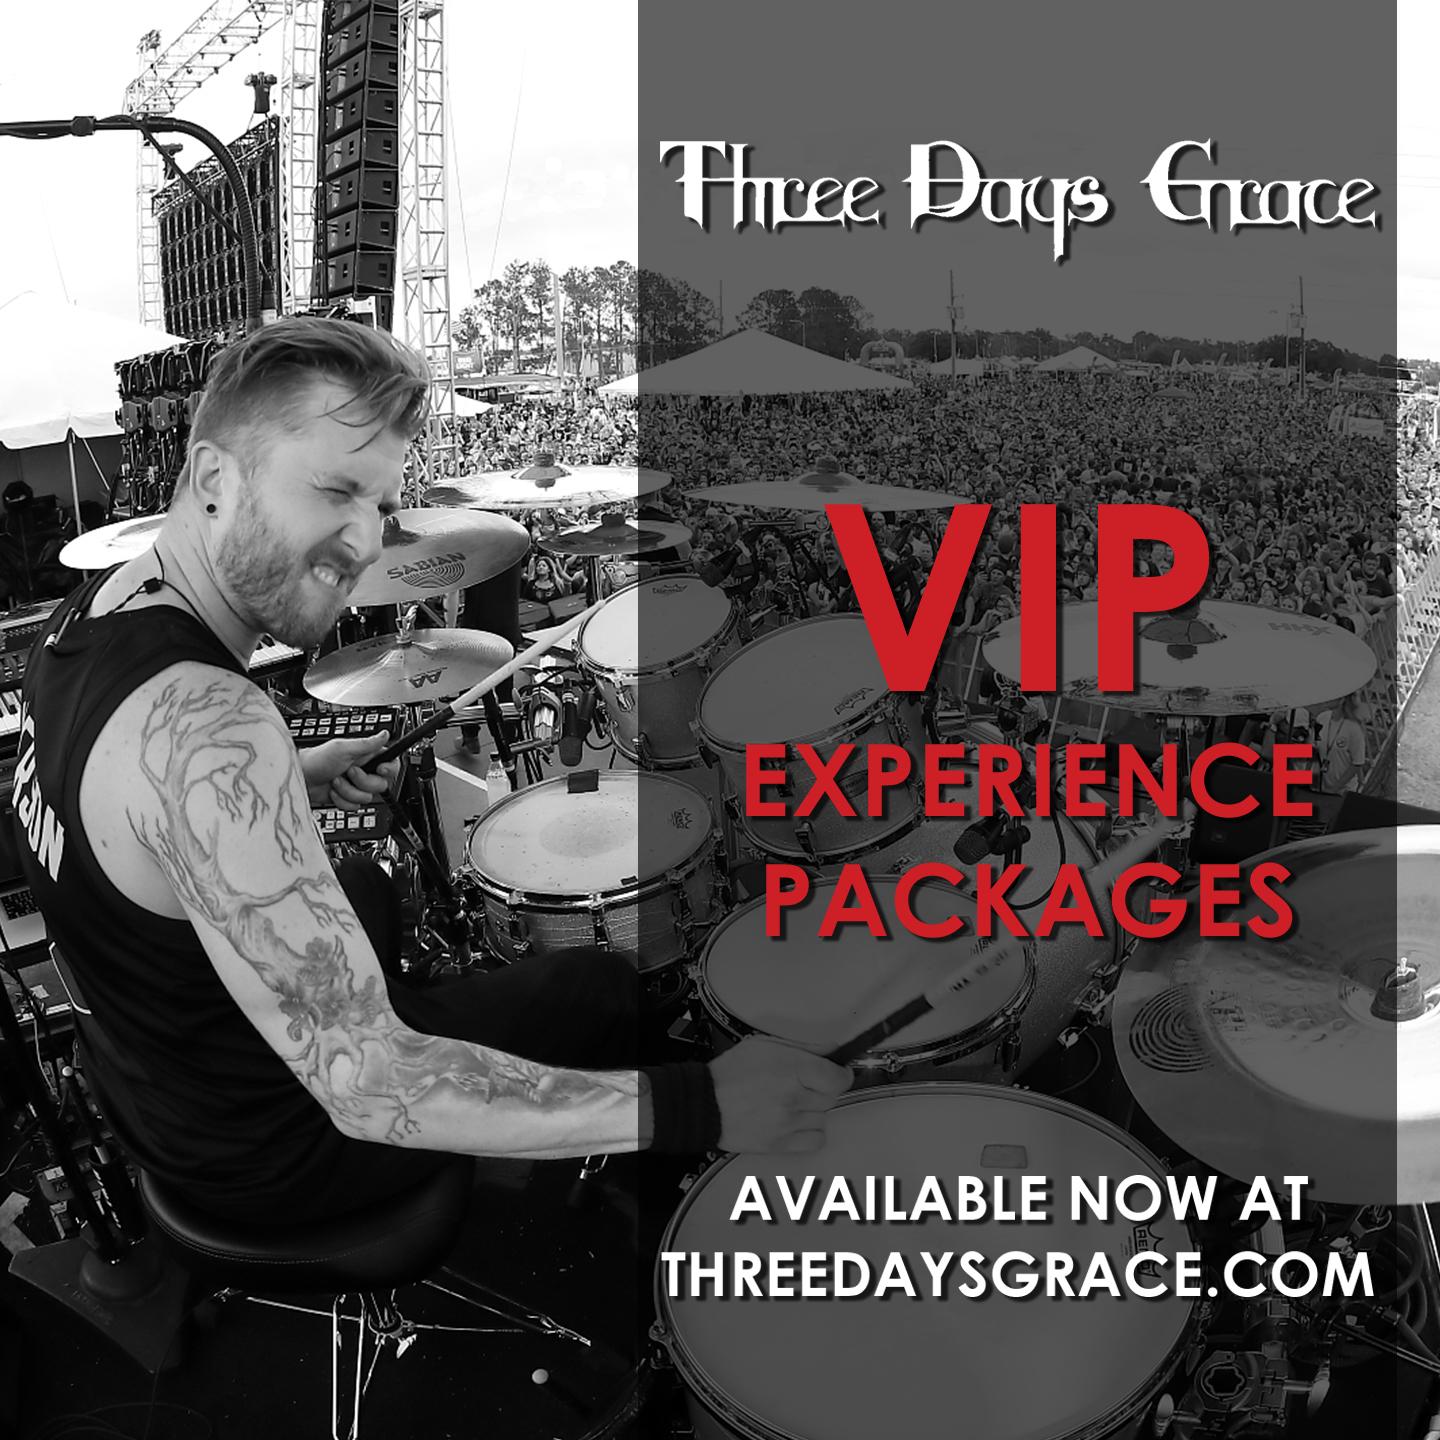 https://threedaysgrace.com/2018/09/28/vip-experience-package-announced-for-uk-tour/